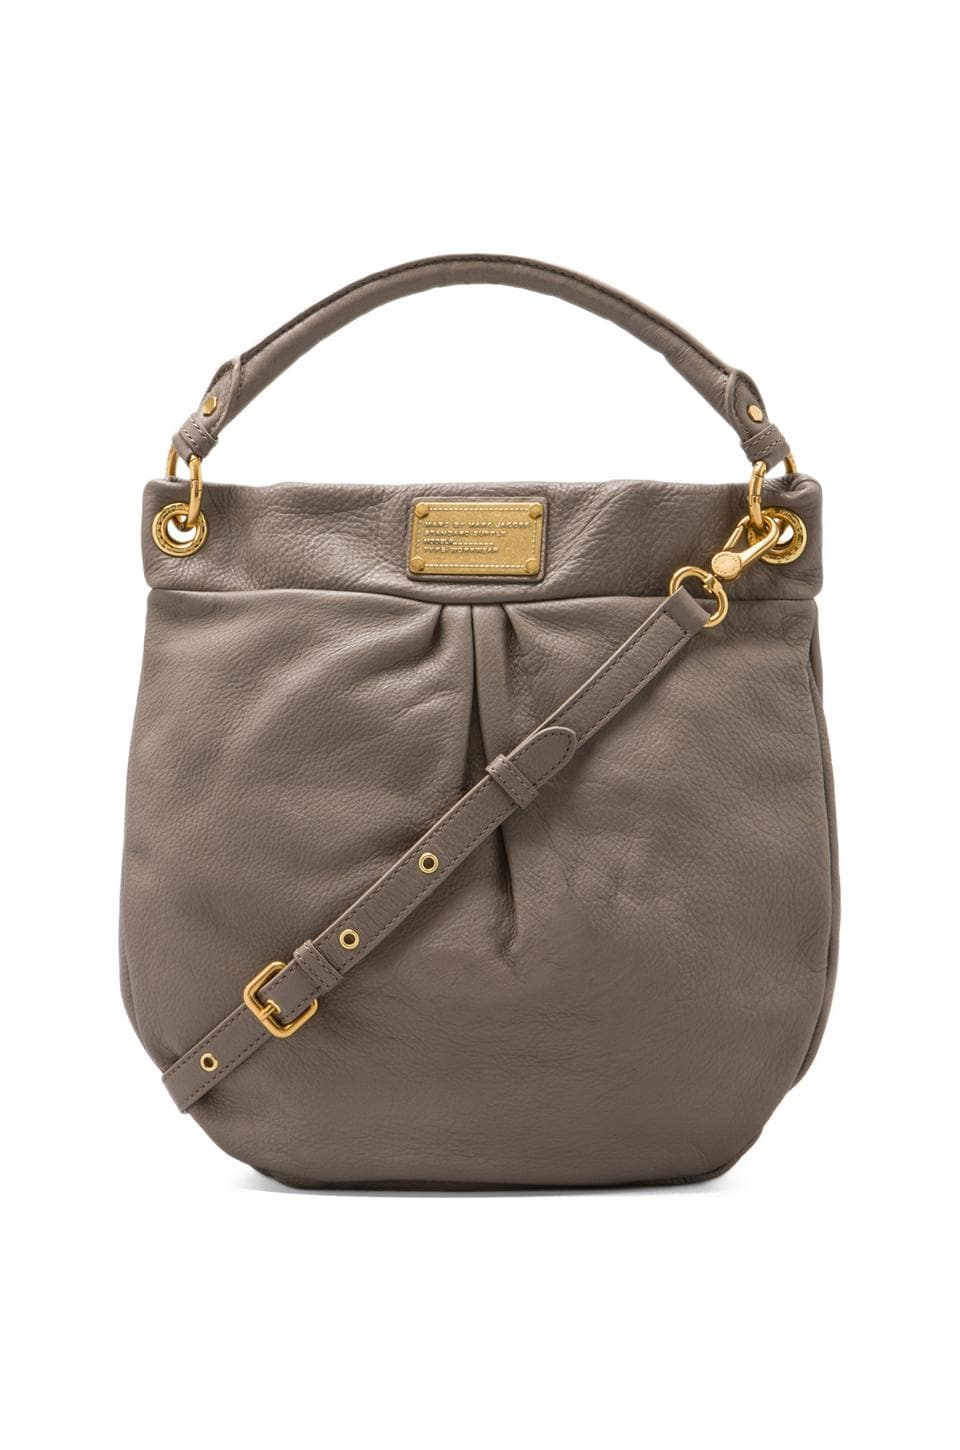 Marc by Marc Jacobs Classic Q Hillier Hobo in Warm Zinc